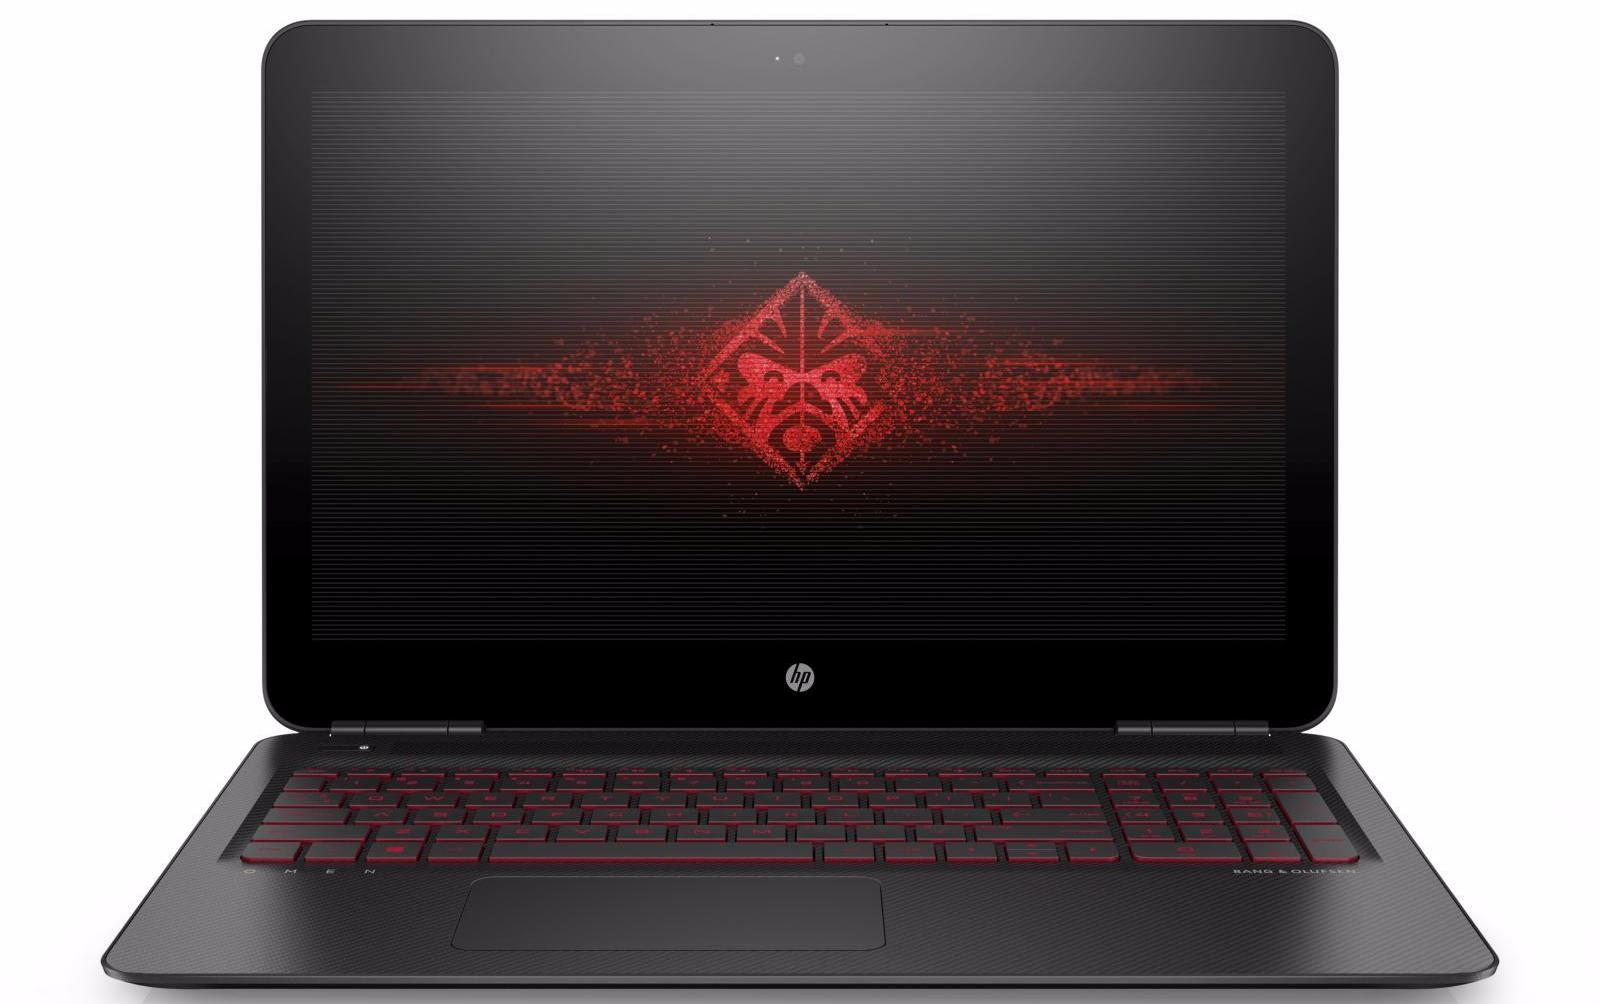 HP launches the Omen Windows 10 Gaming PC Line